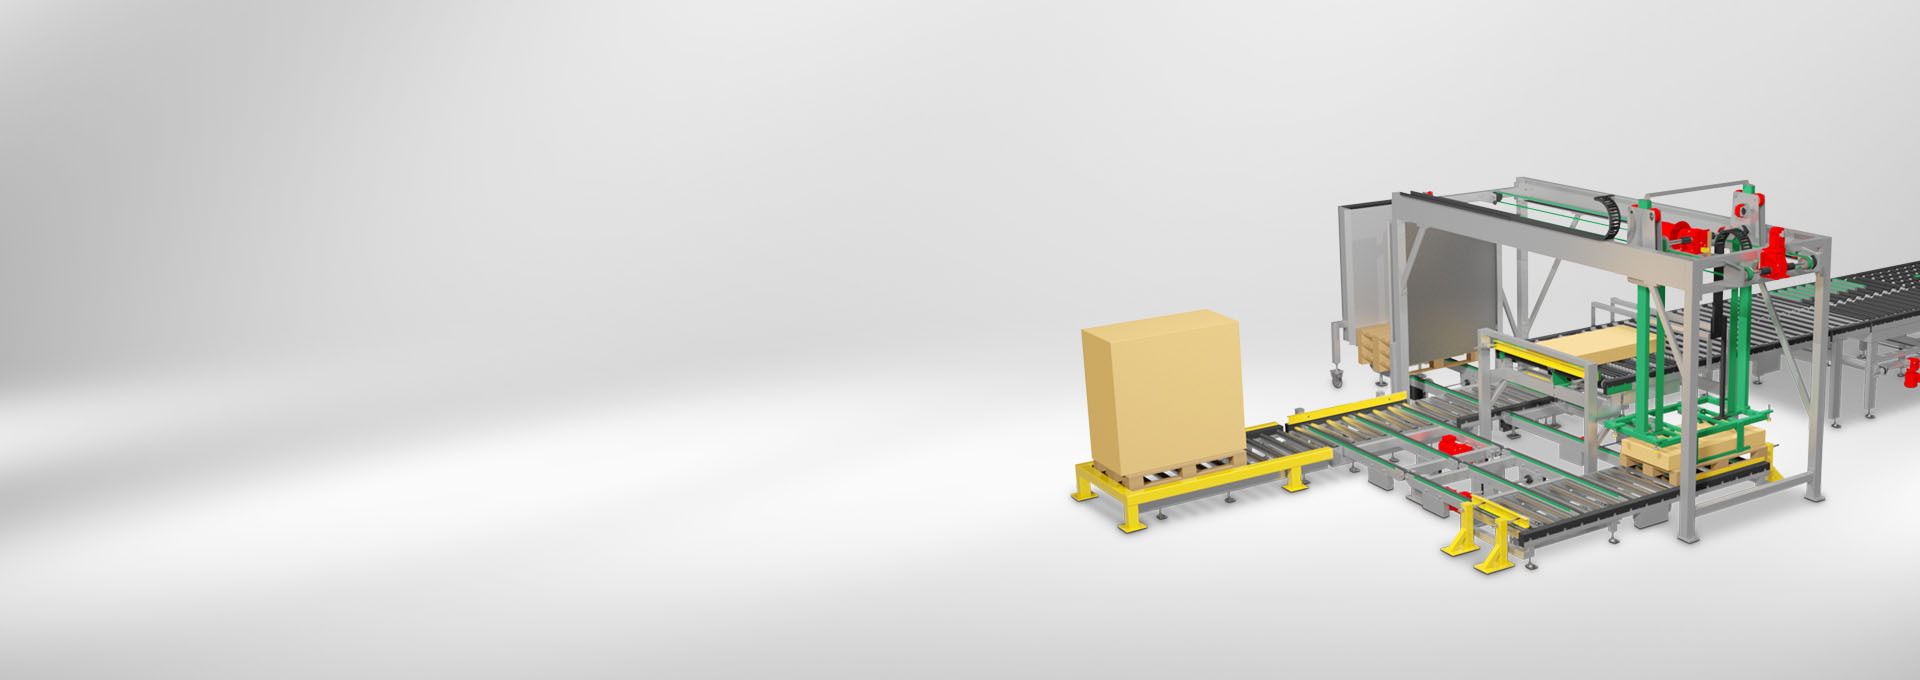 conveyors for interior fittings, façade construction and insulation technology